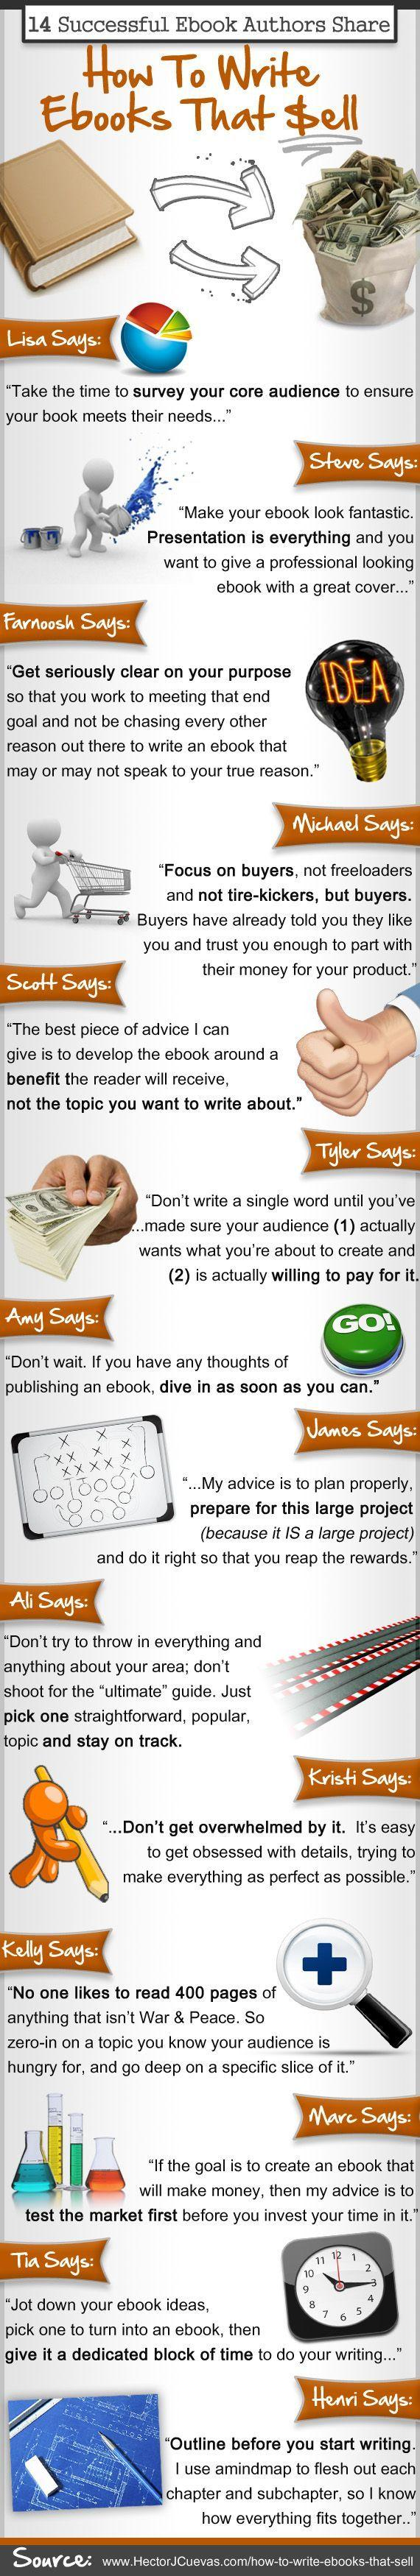 How To Write Ebooks That Sell Infographic